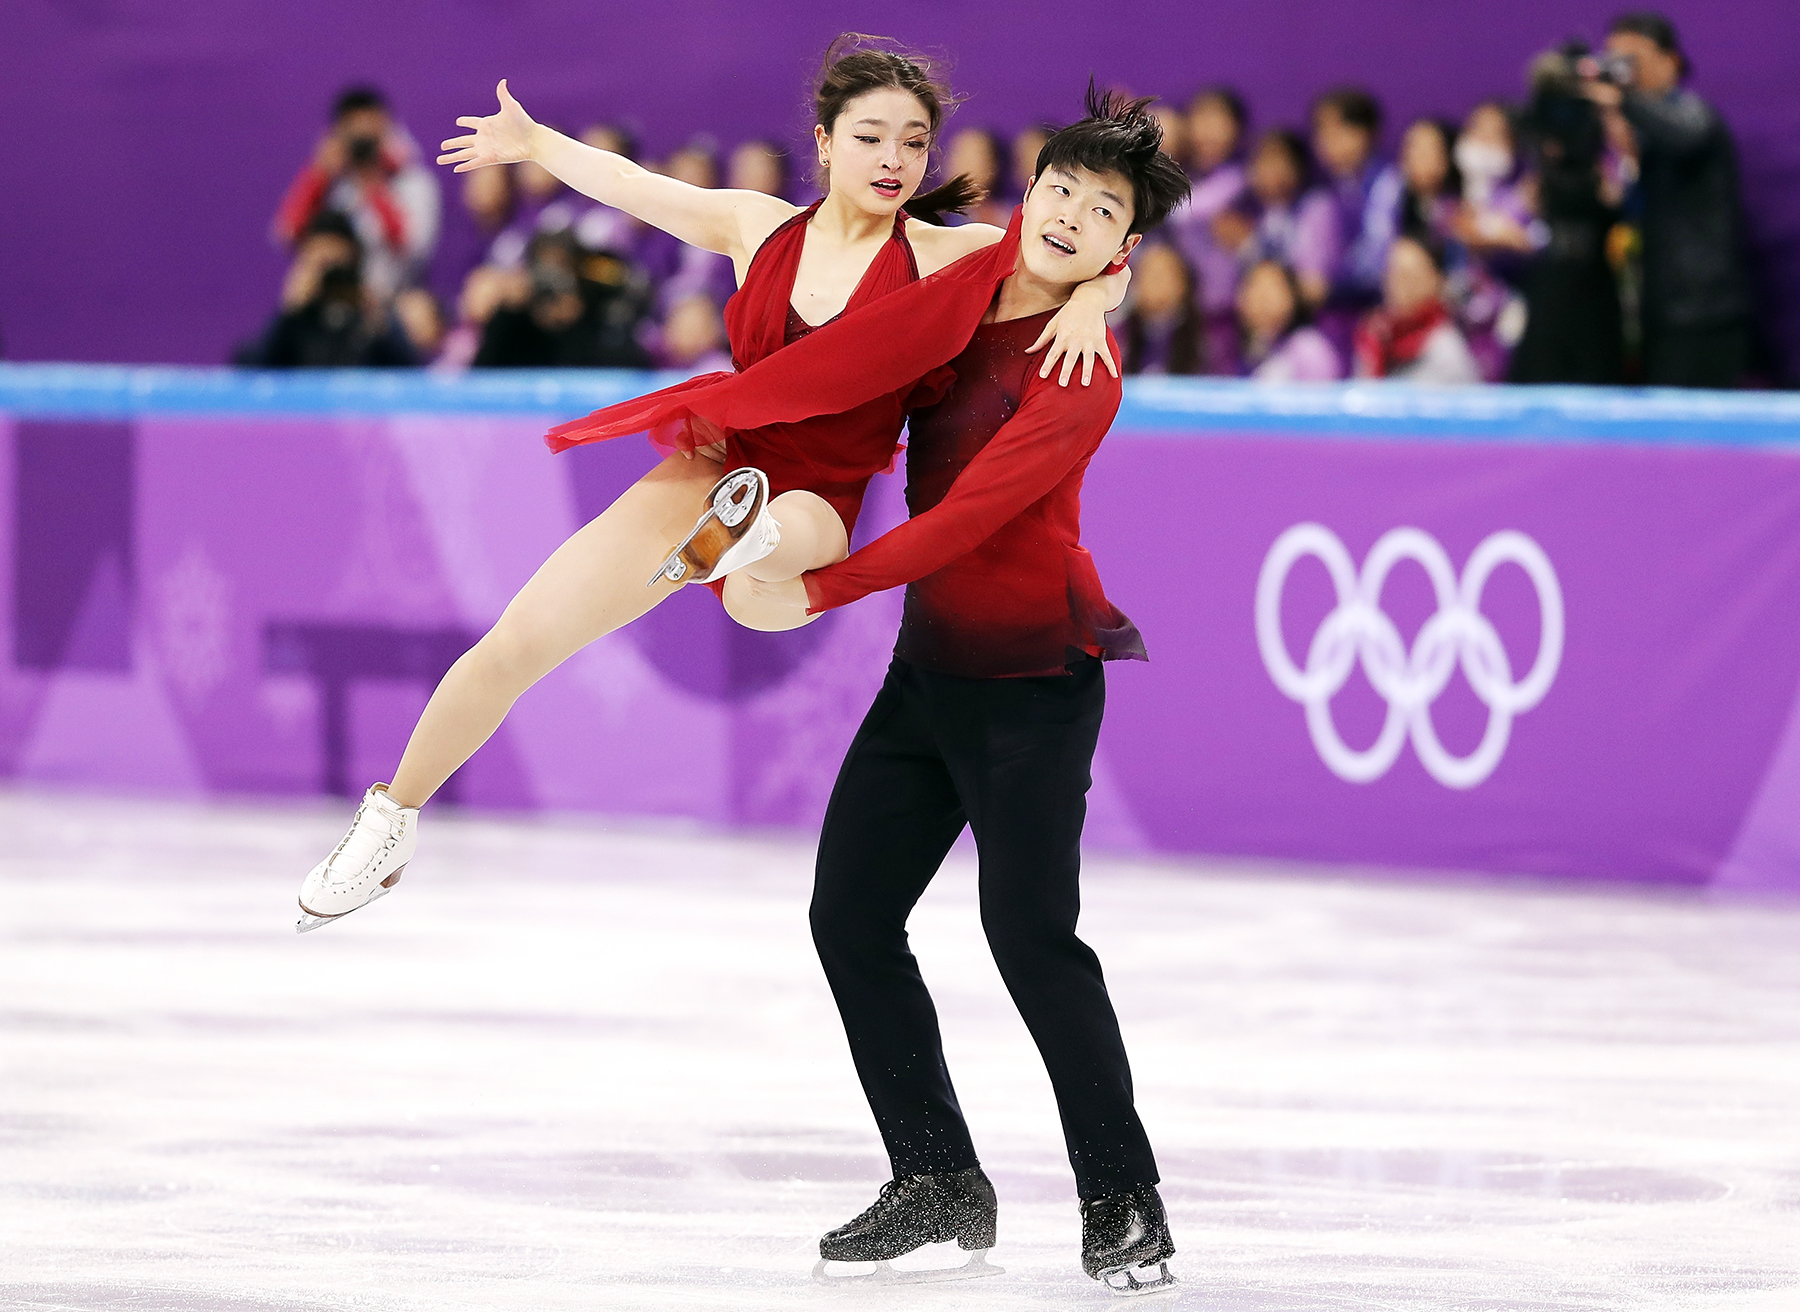 Maia Shibutani Alex Shibutani Figure Skating Team Event Ice Dance Free Dance PyeongChang 2018 Winter Olympics